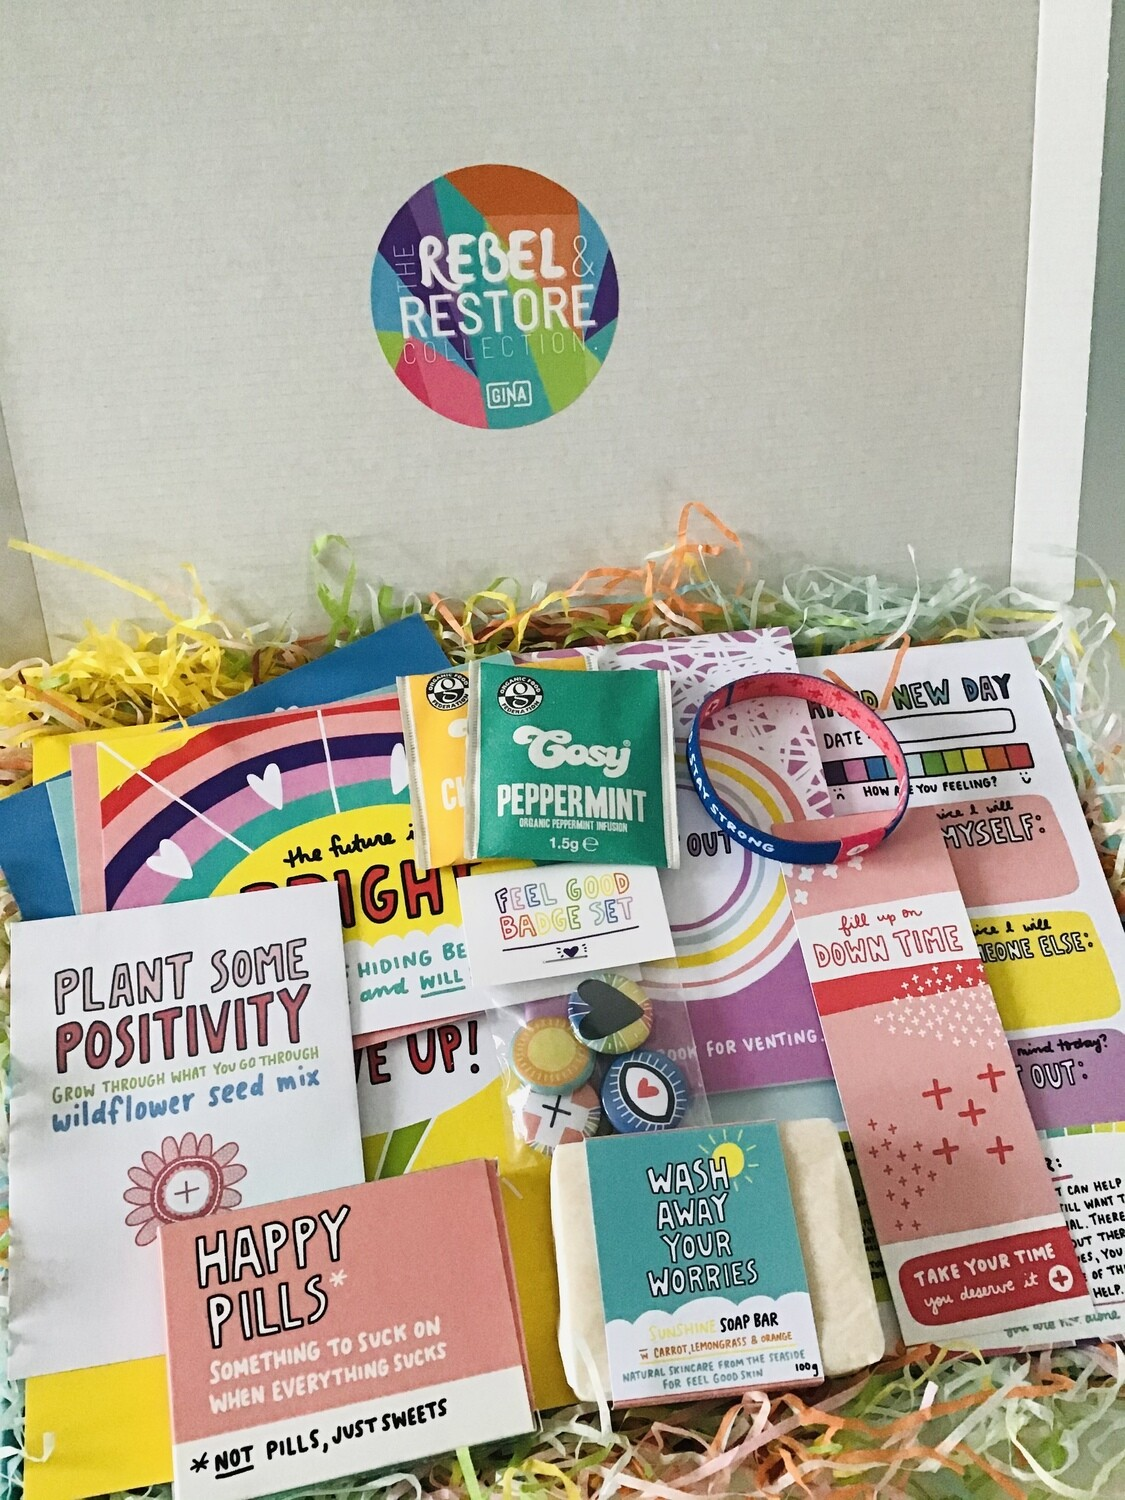 The Rebel & Restore Collection: Feel Good First Aid Kit